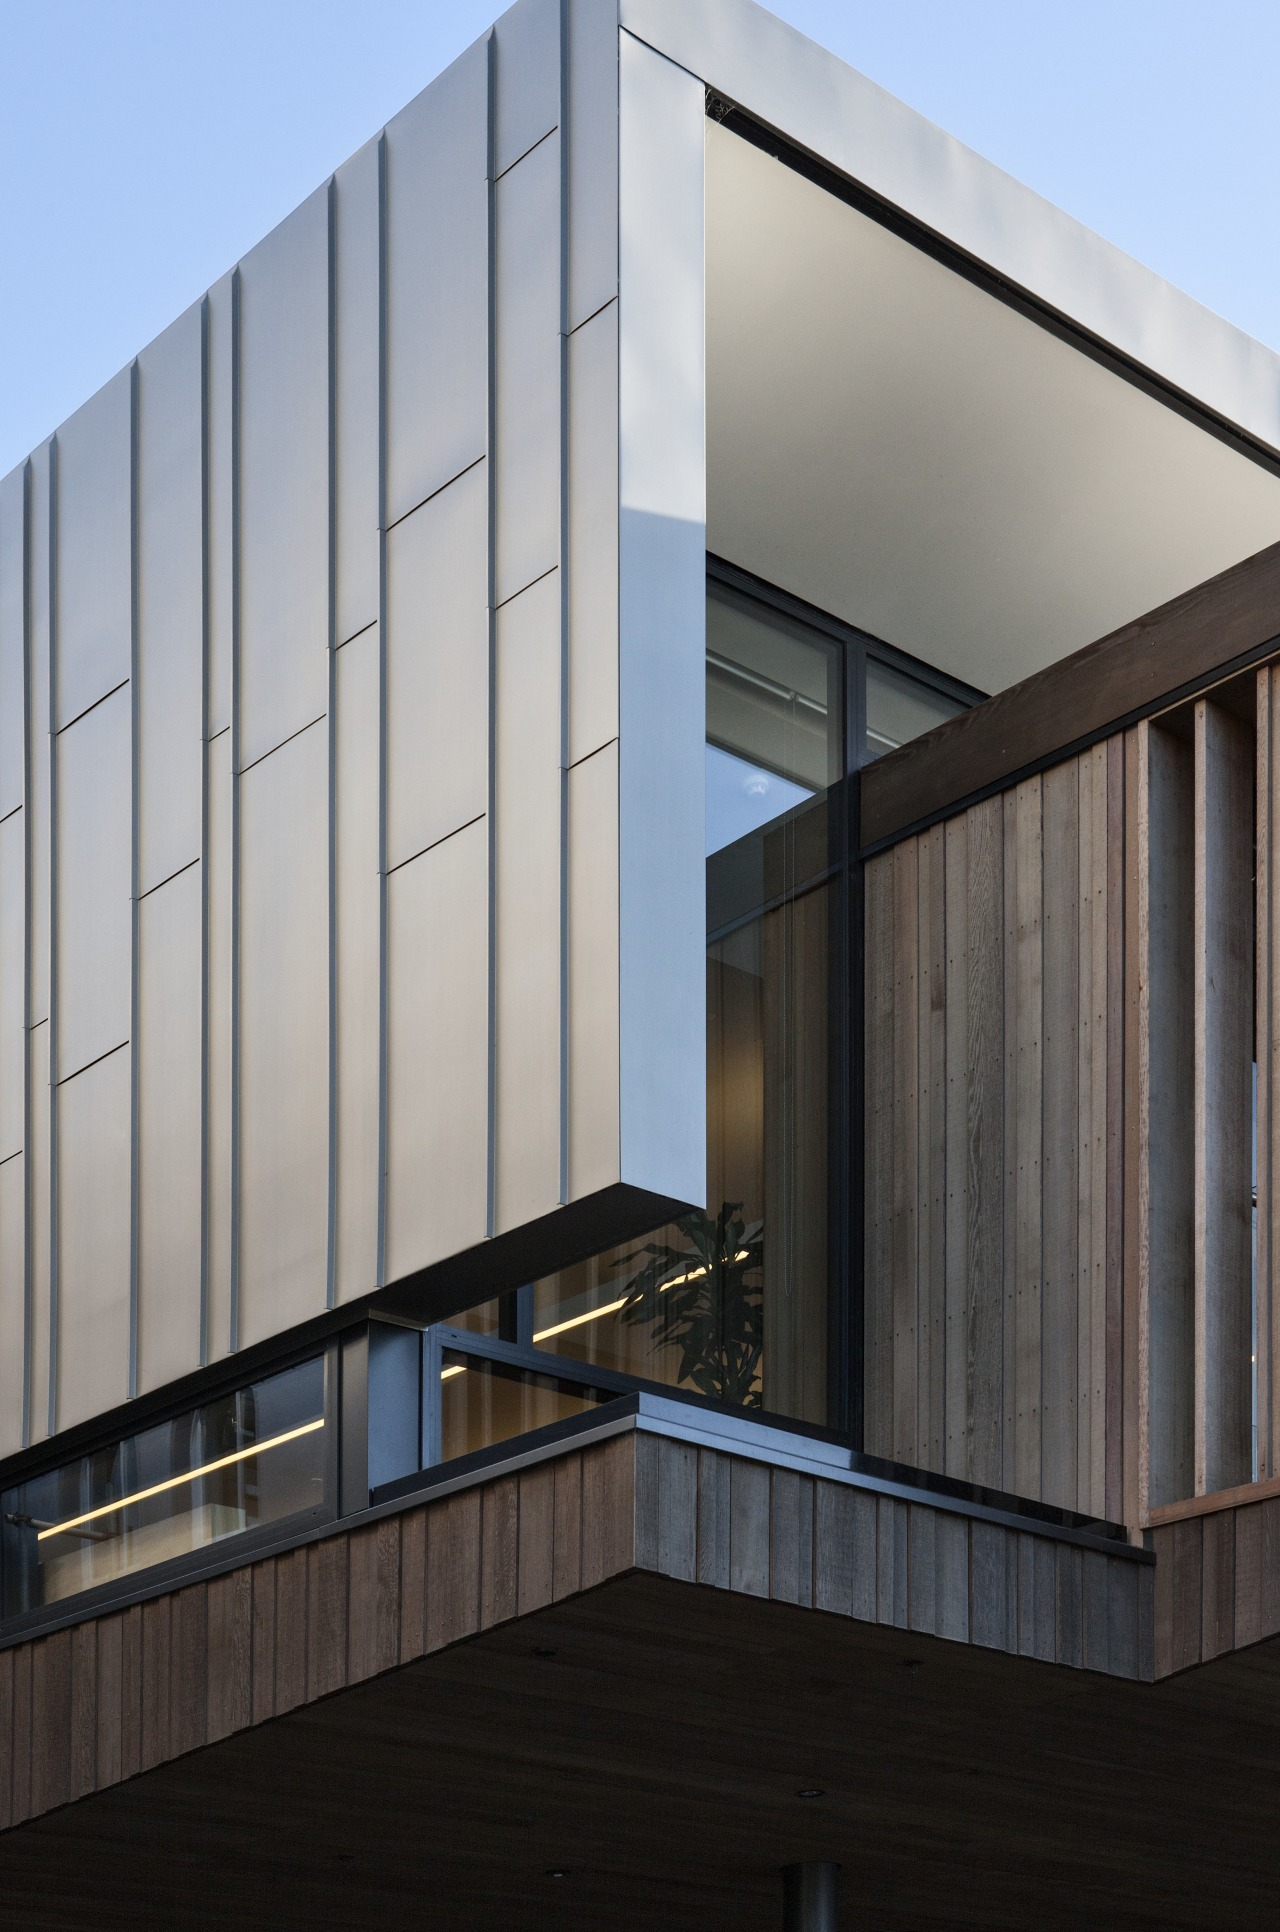 Titanium zinc cladding on modern building architecture, building, commercial building, corporate headquarters, daylighting, daytime, facade, headquarters, house, line, window, gray, black